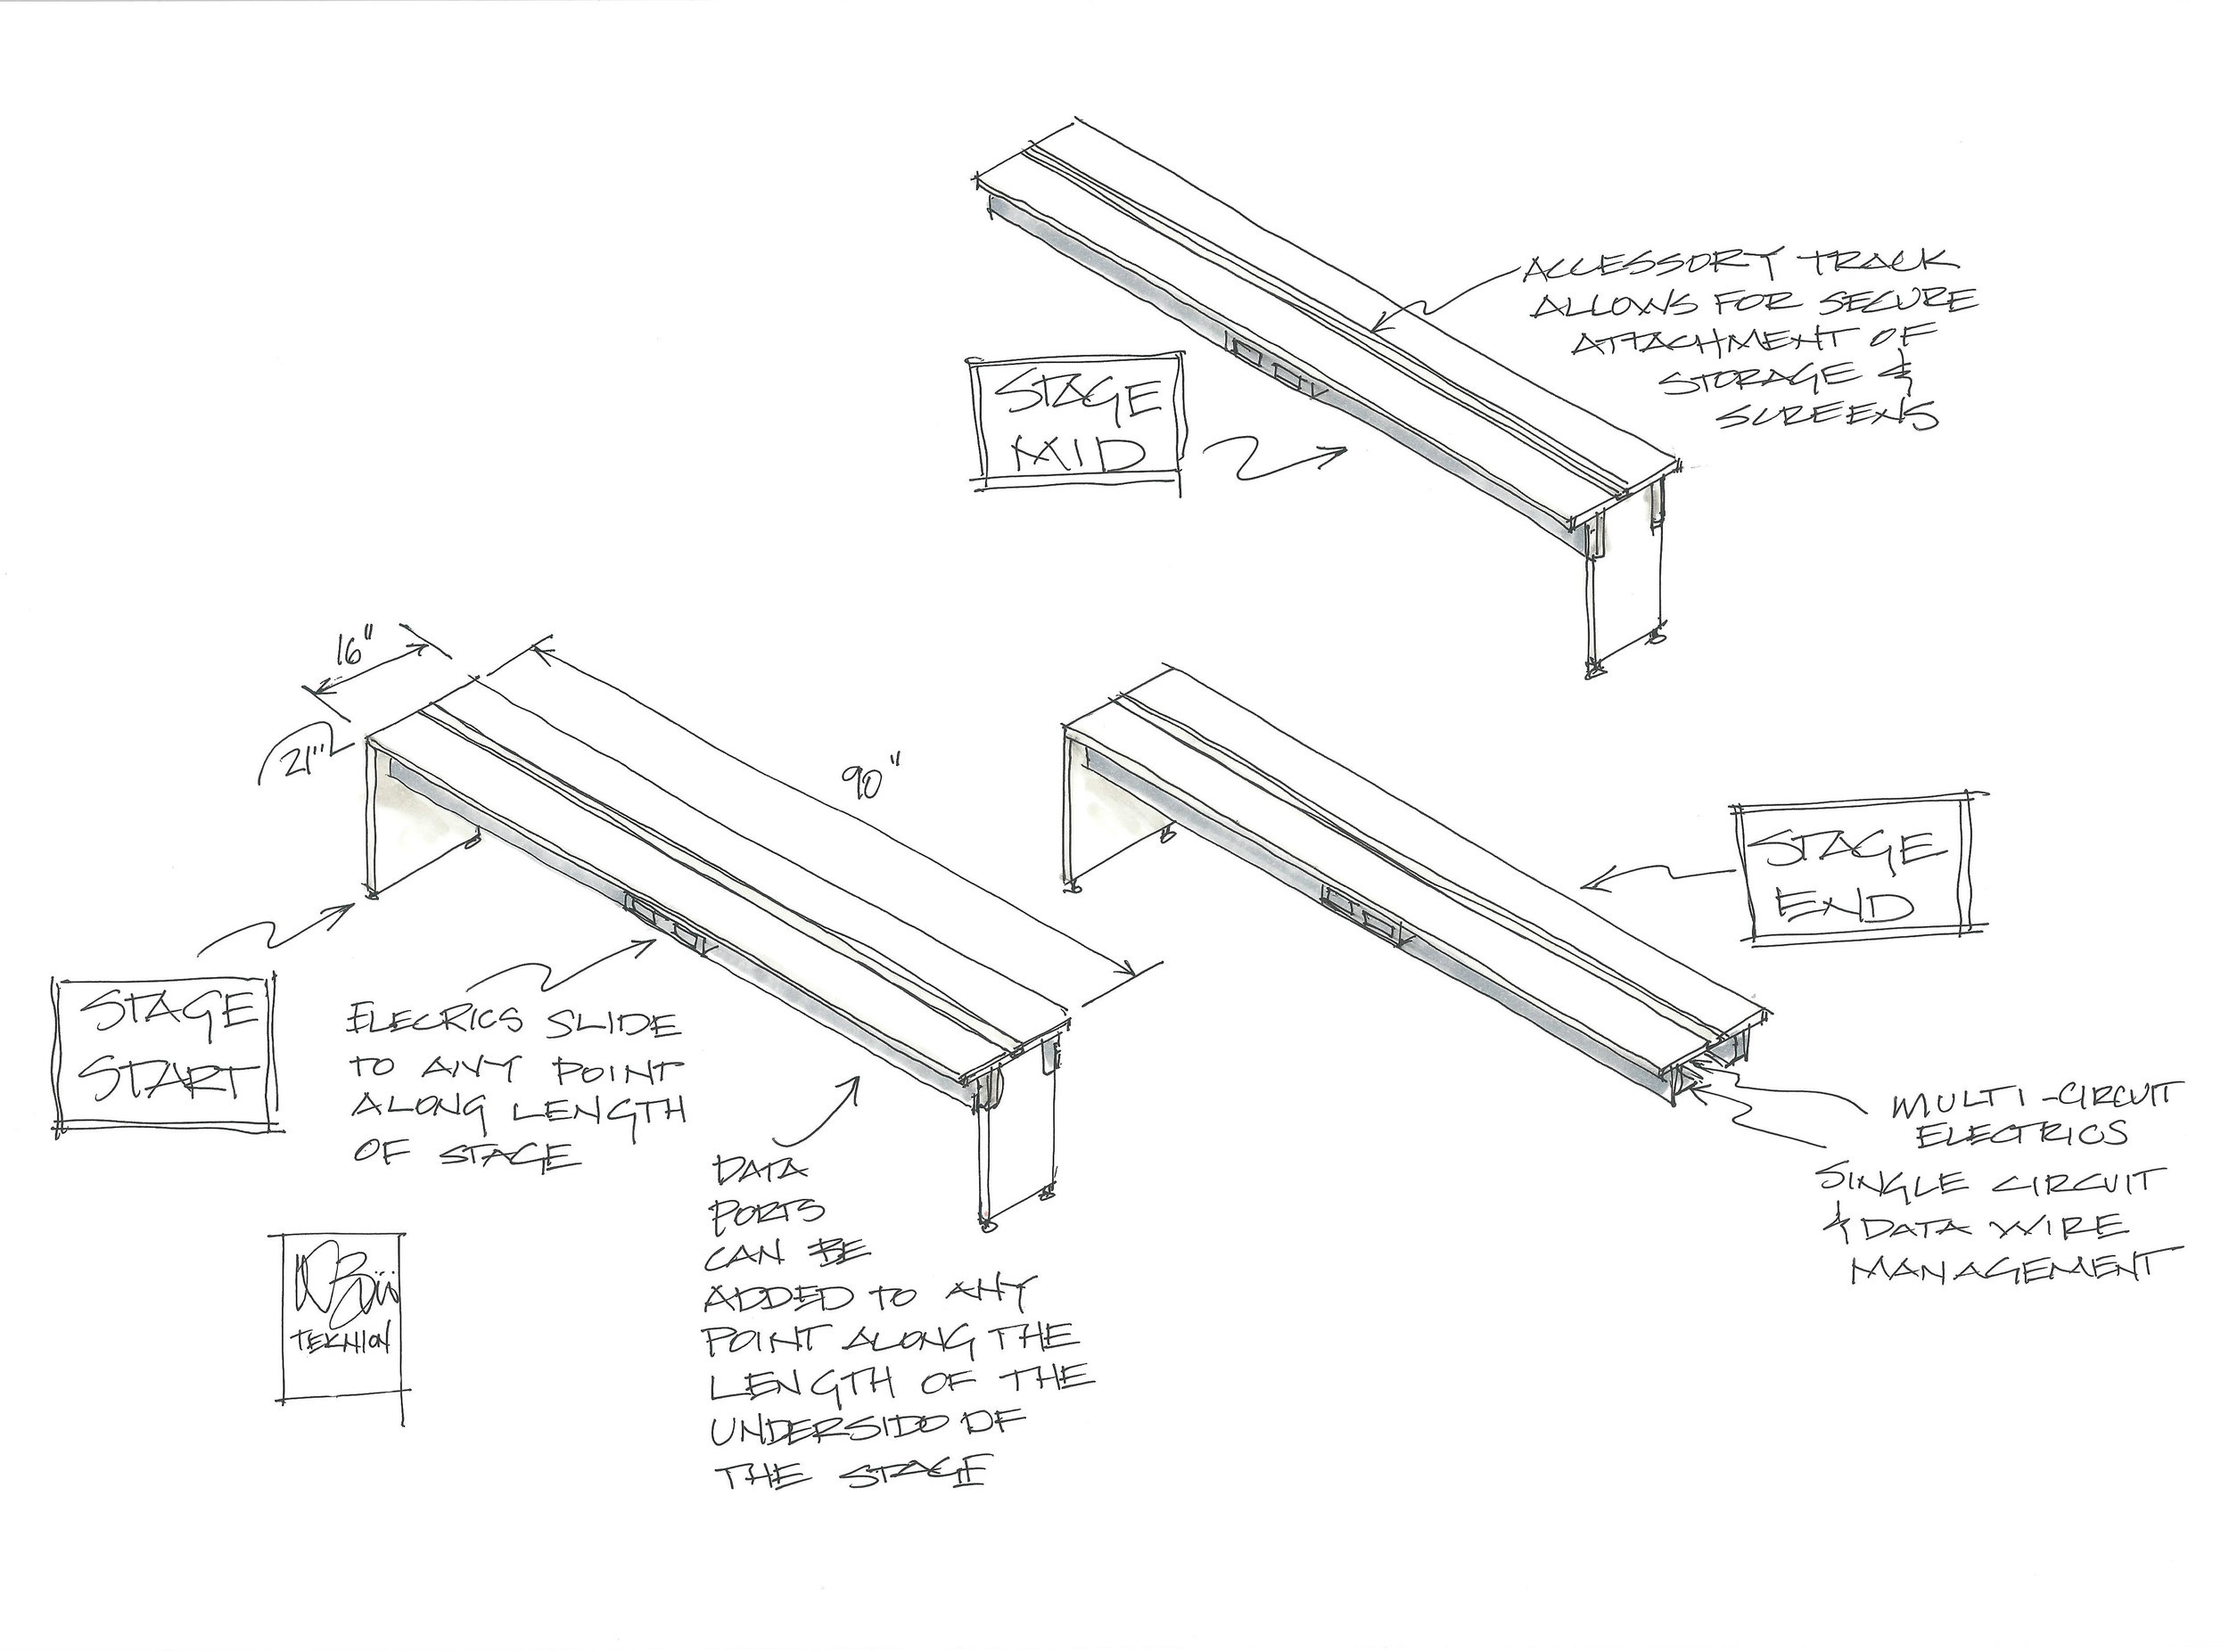 Beginning, middle and end stage configurations with different features to suit their locations.